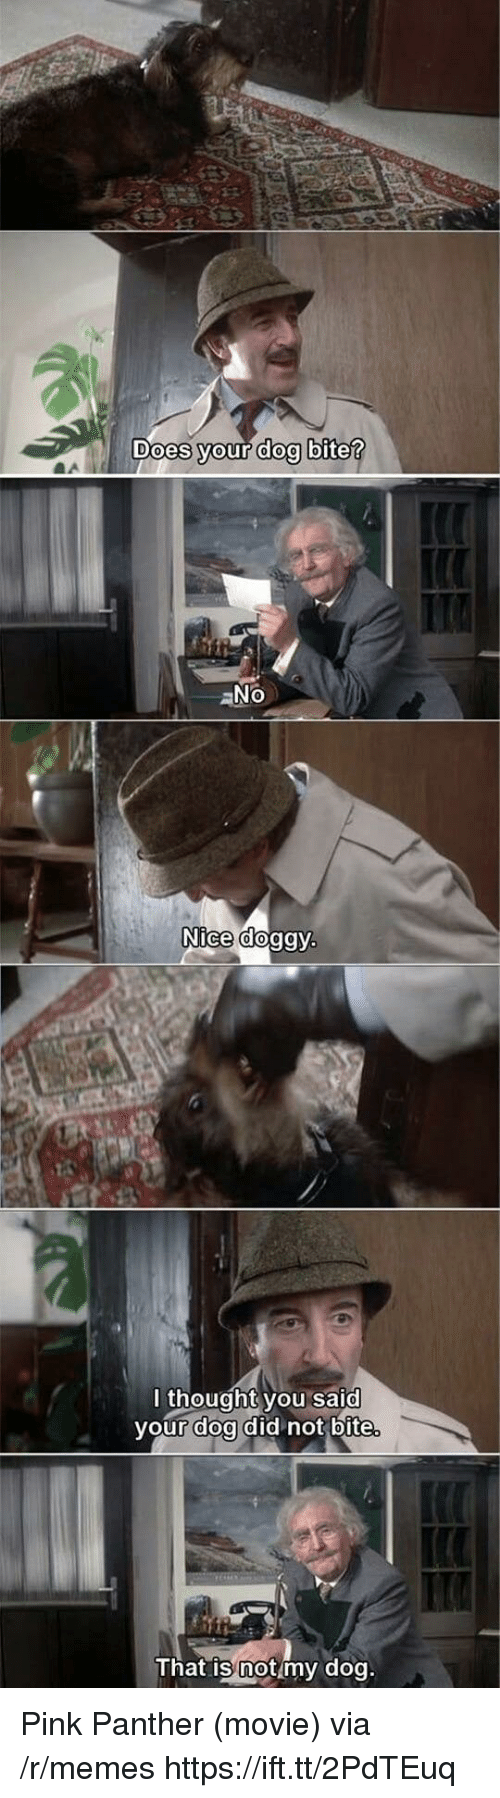 doa: oes your dog bite  Nice dog  lthought you said  vour doa did not bite  That is not my dog Pink Panther (movie) via /r/memes https://ift.tt/2PdTEuq